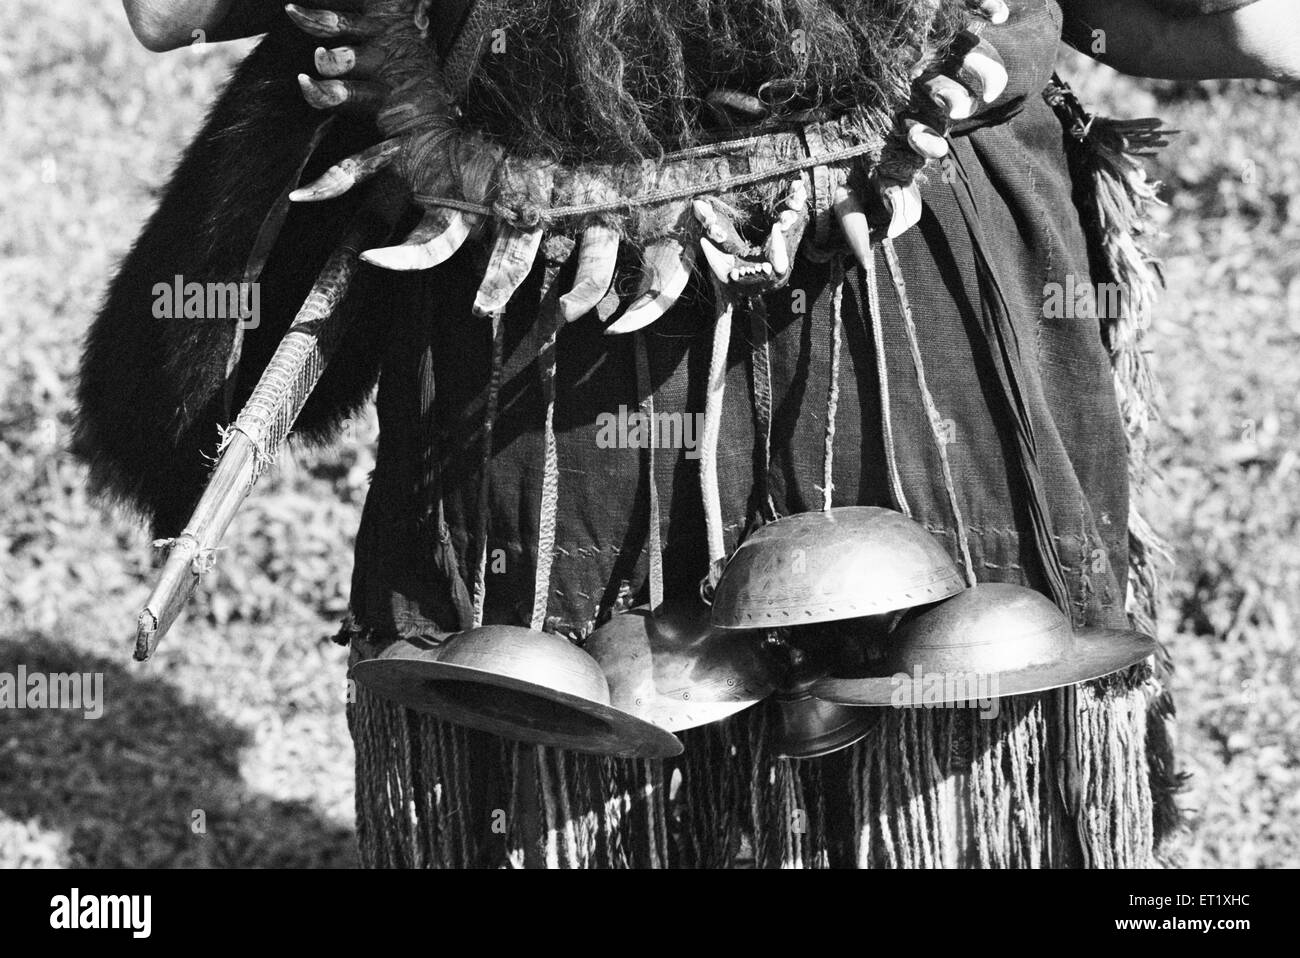 Metal cymbals used to provide adornment music ; Hill Miri tribe ; Arunachal Pradesh ; India 1982 - Stock Image